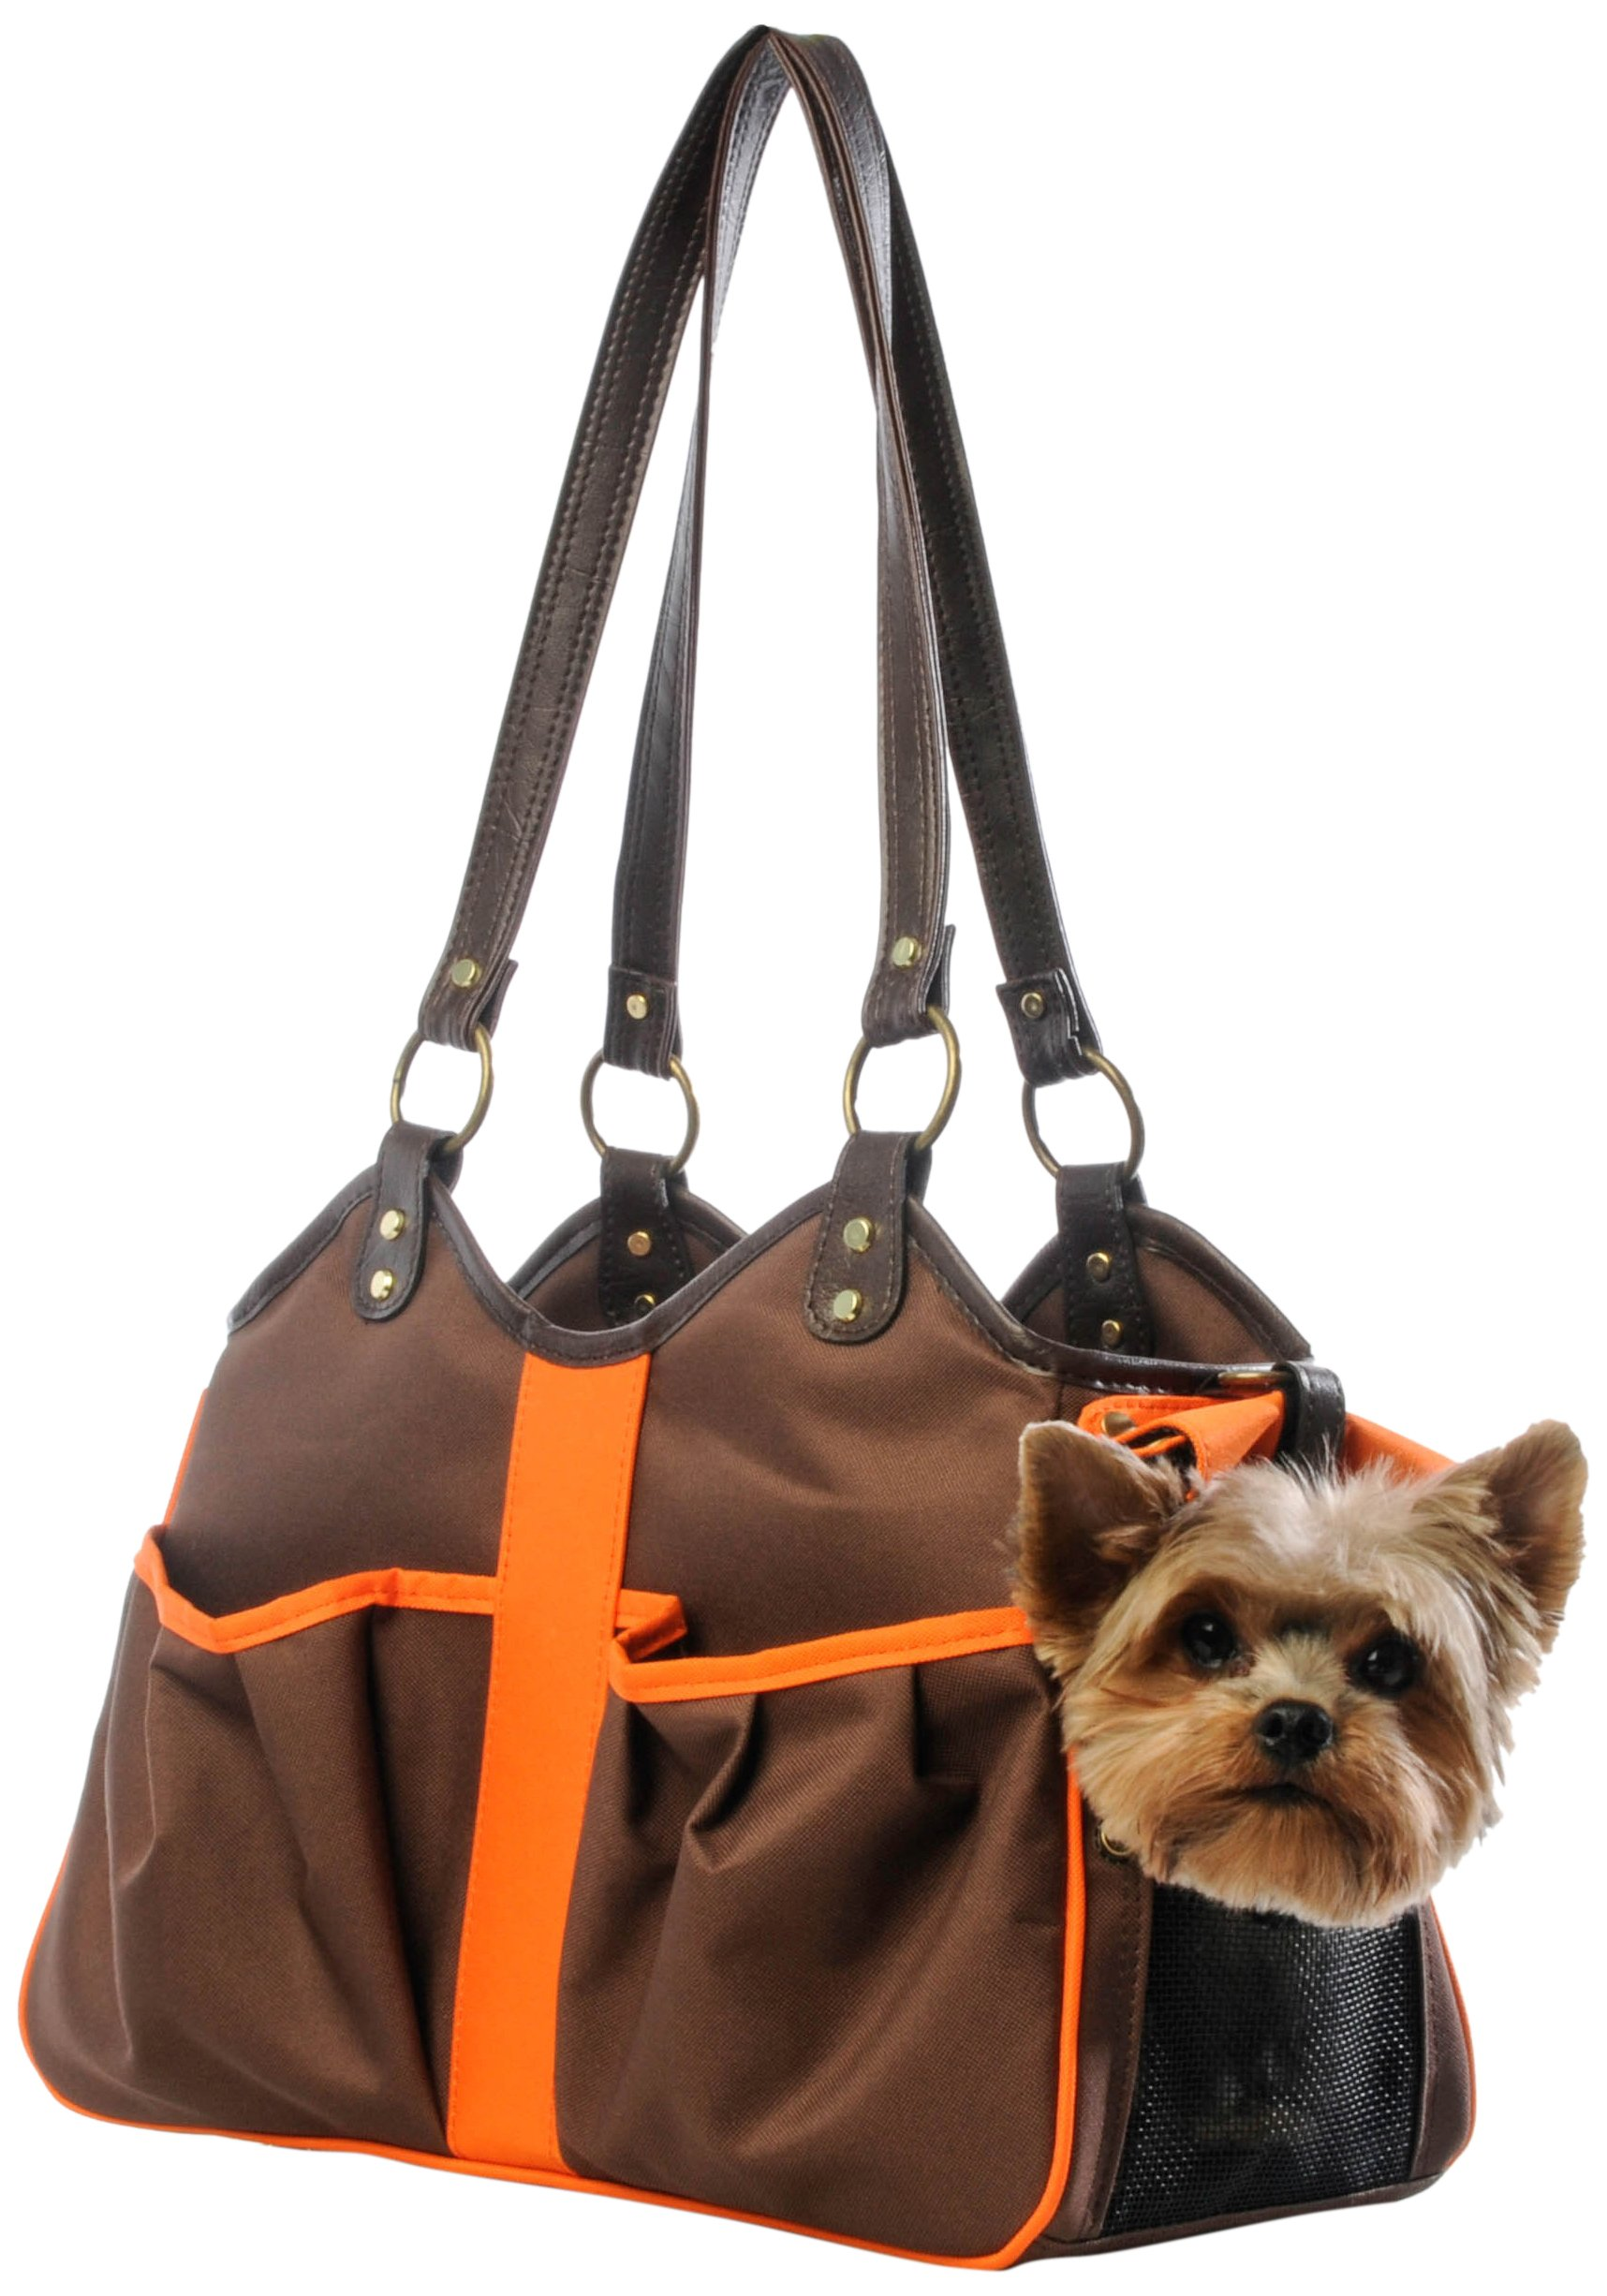 Petote Metro 2 Pet Carrier Bag, Small, Brown/Orange